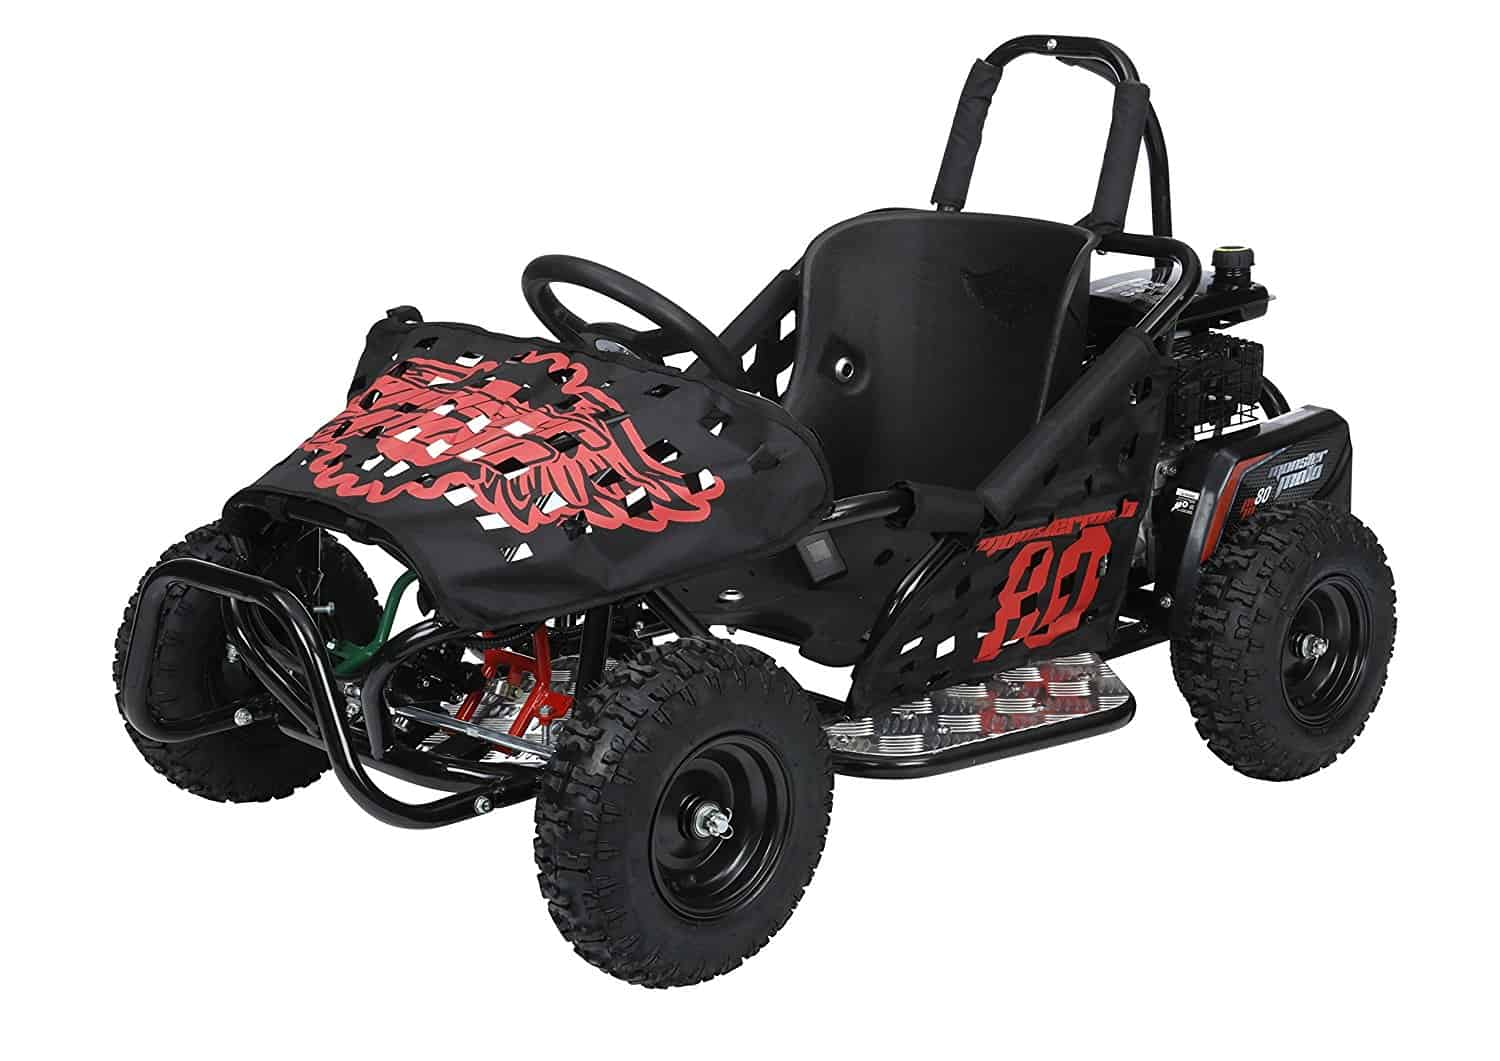 Monster Moto Go Kart – Kids Off Road Go Kart